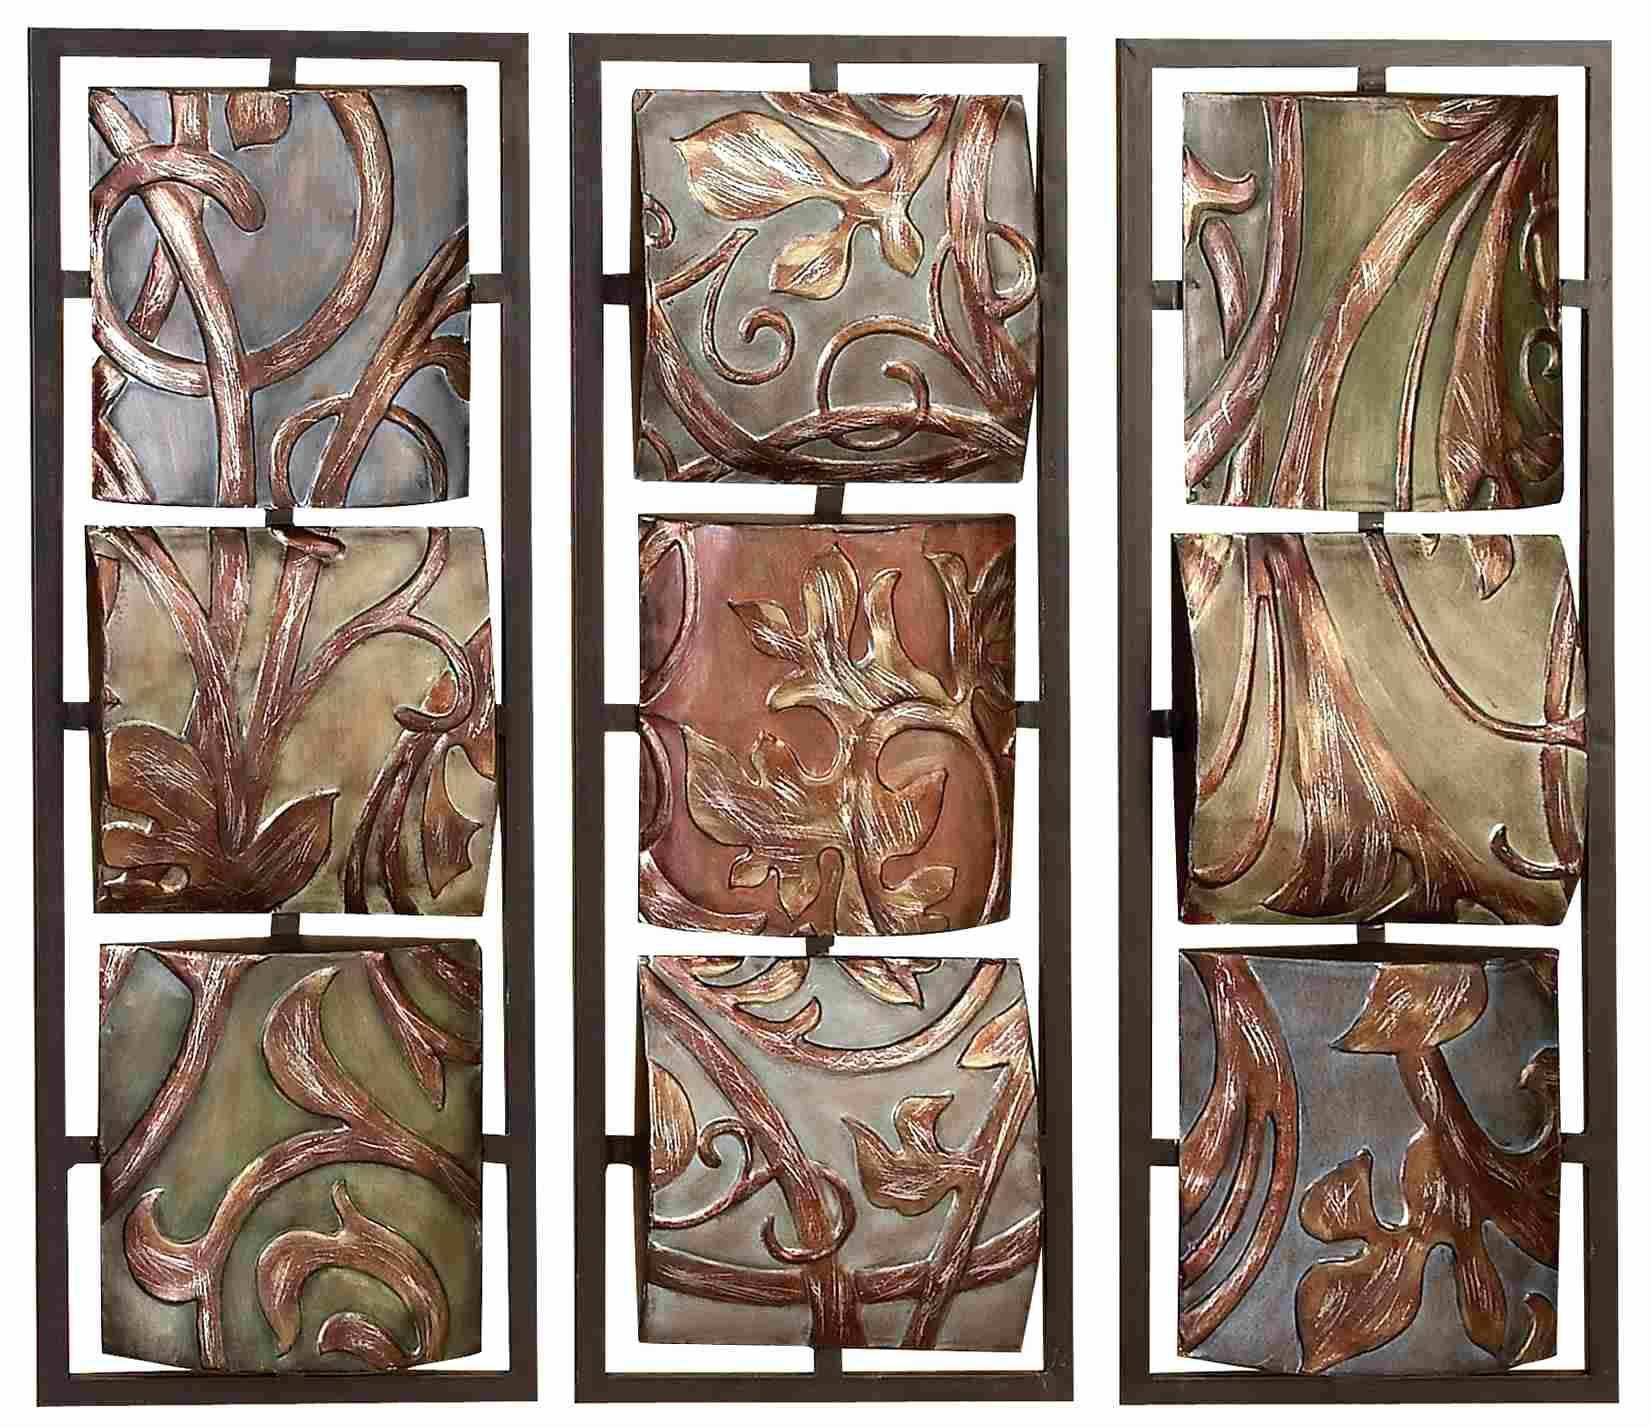 Faux Metal Wall Decor • Walls Decor With Regard To Most Up To Date Faux Metal Wall Art (View 9 of 20)